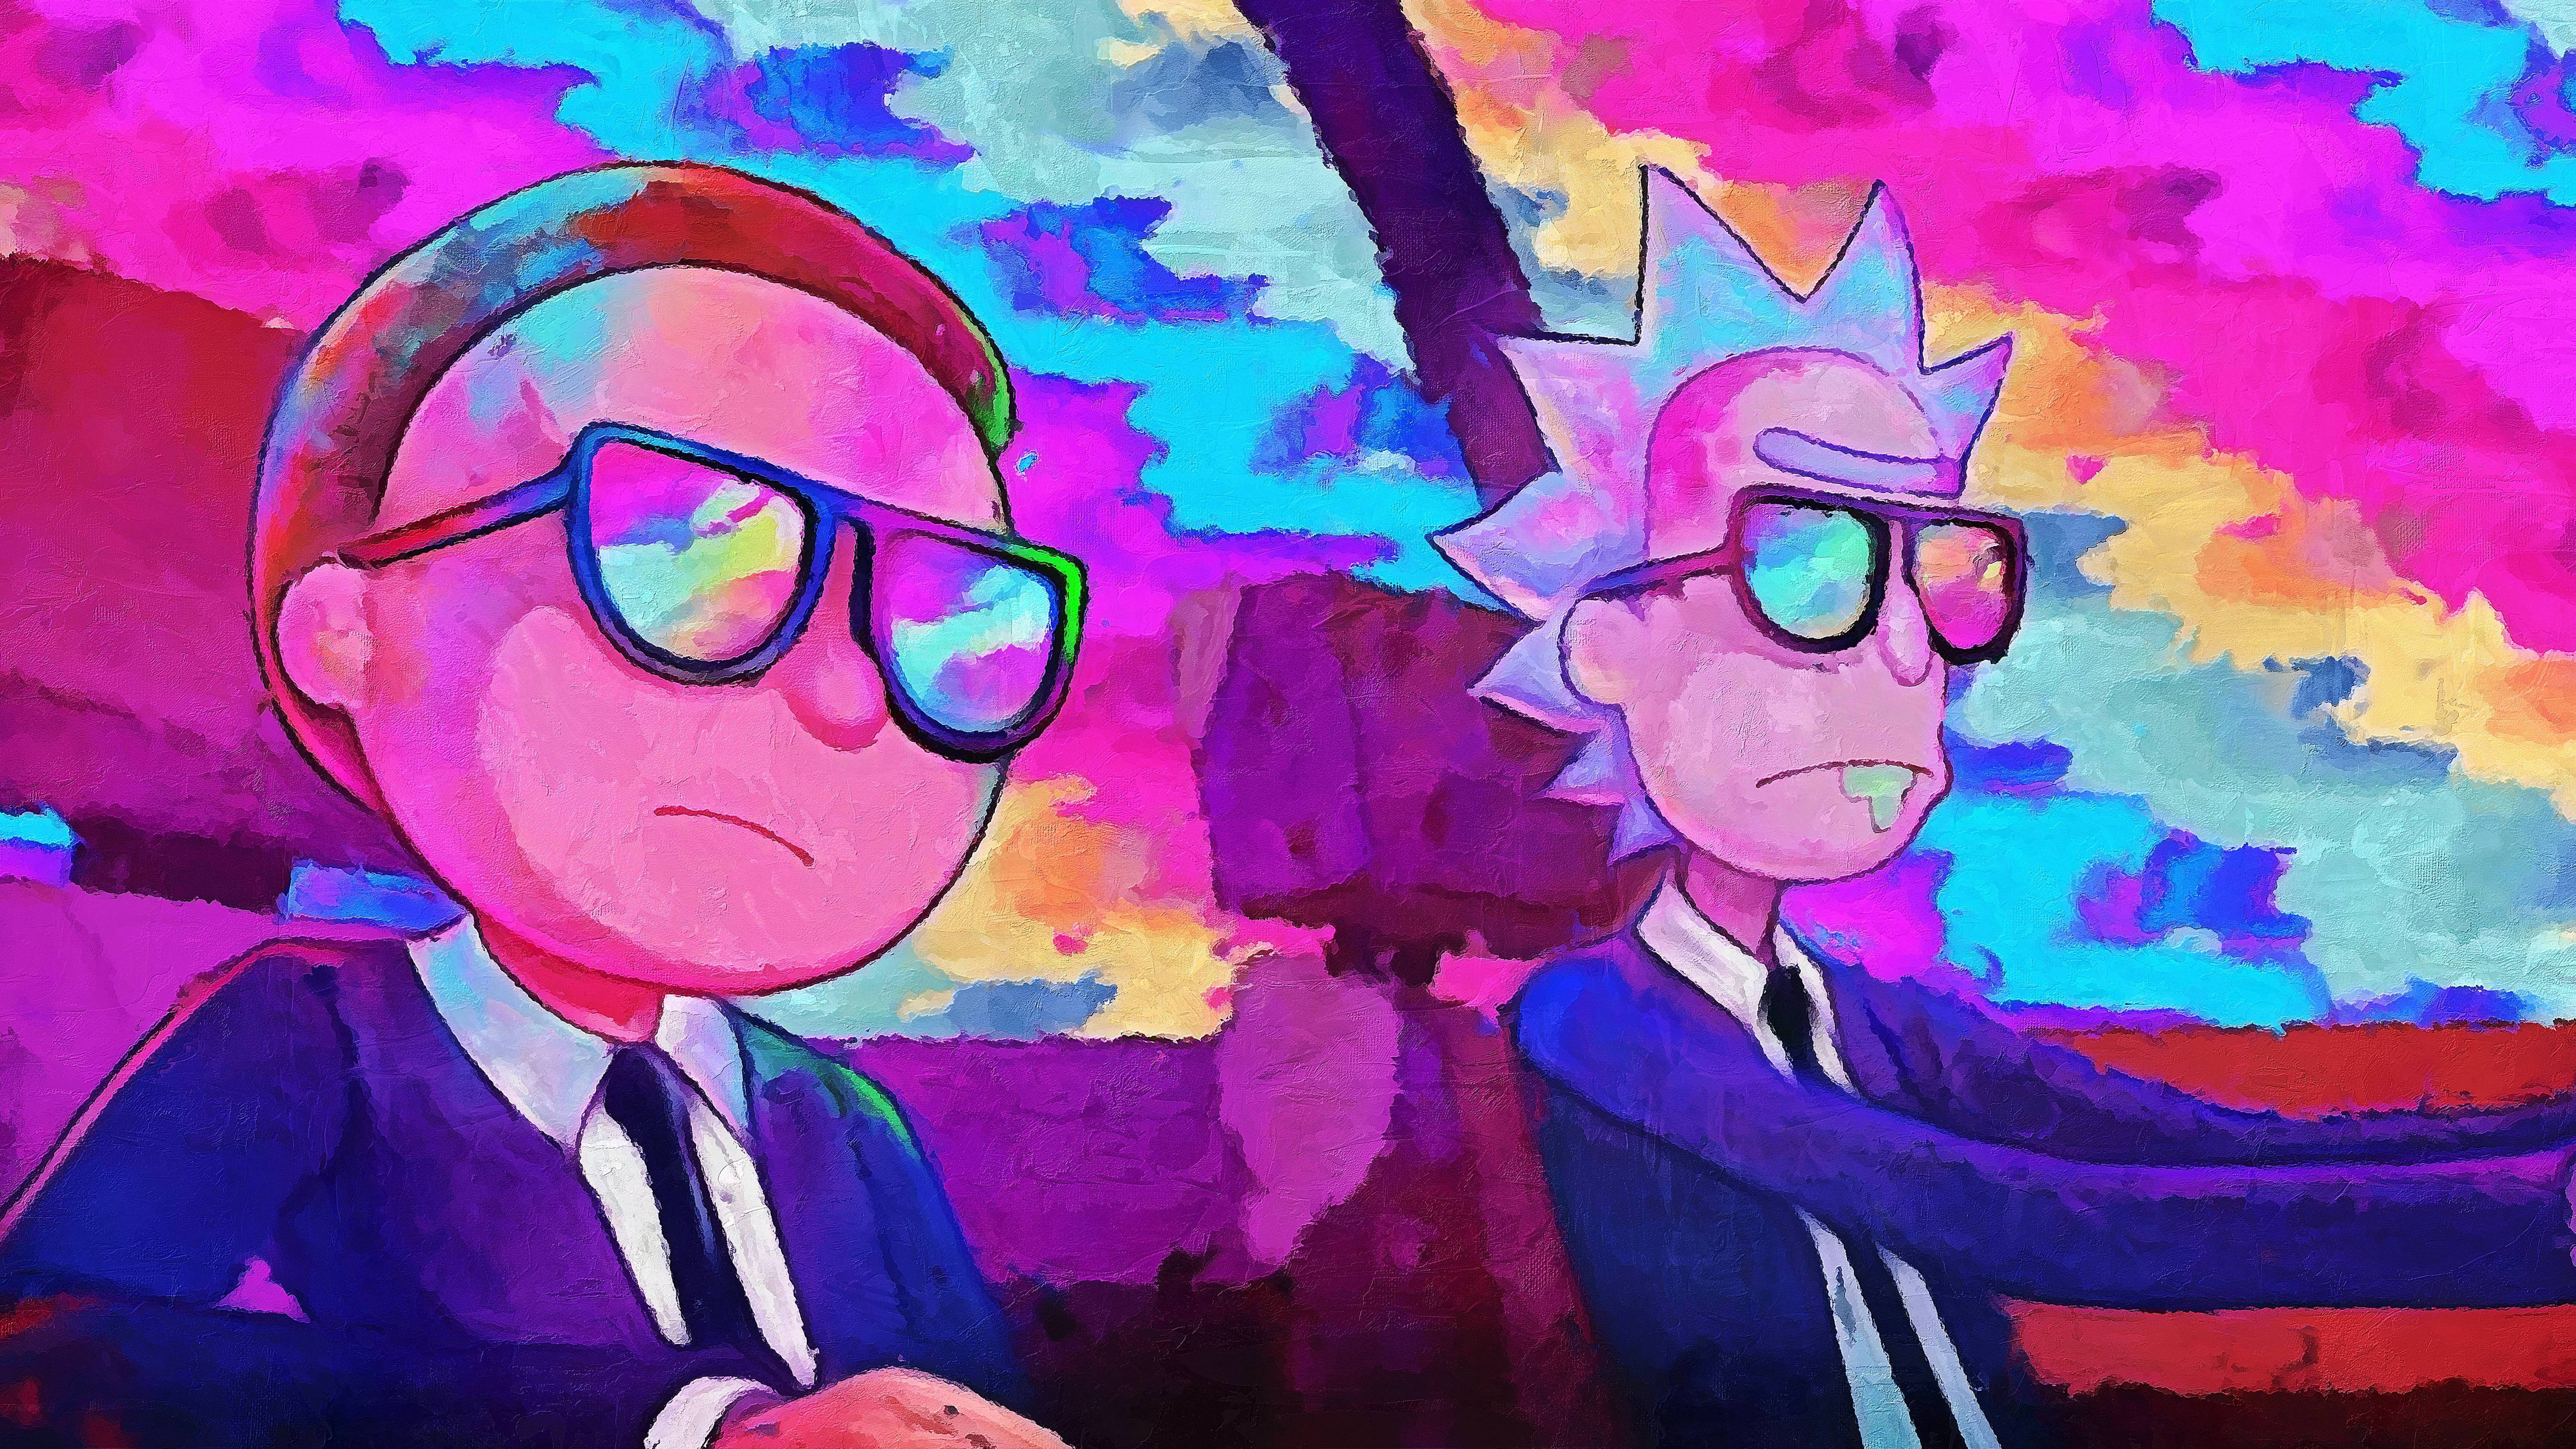 2048x1152 Rick And Morty 5k Artwork 2048x1152 Resolution